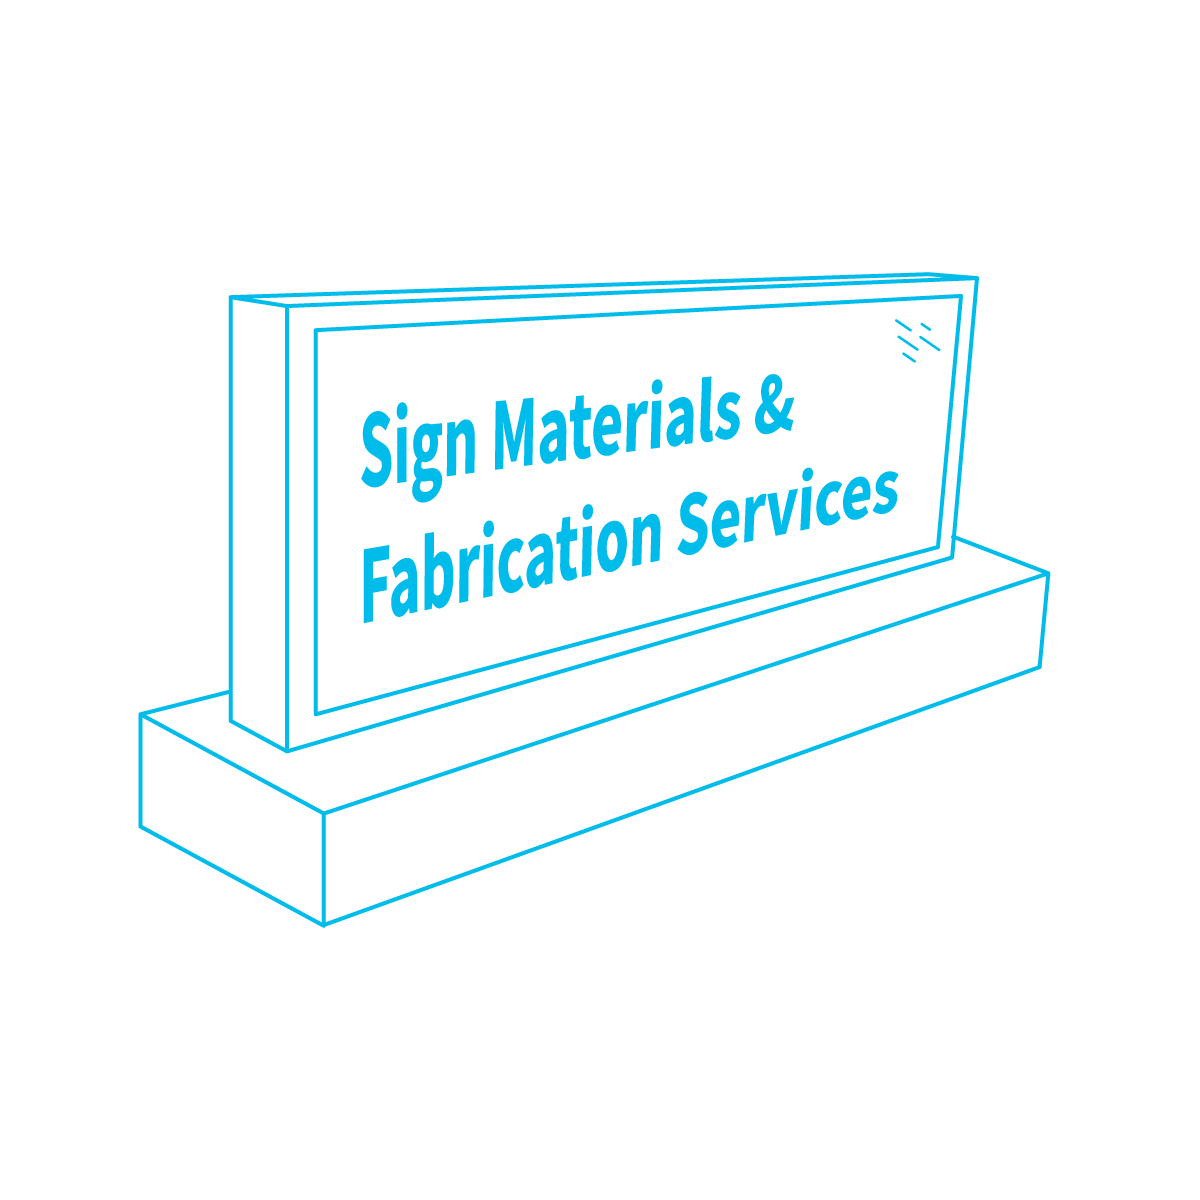 Lustercraft Plastics Sign Fabrication and Supplies